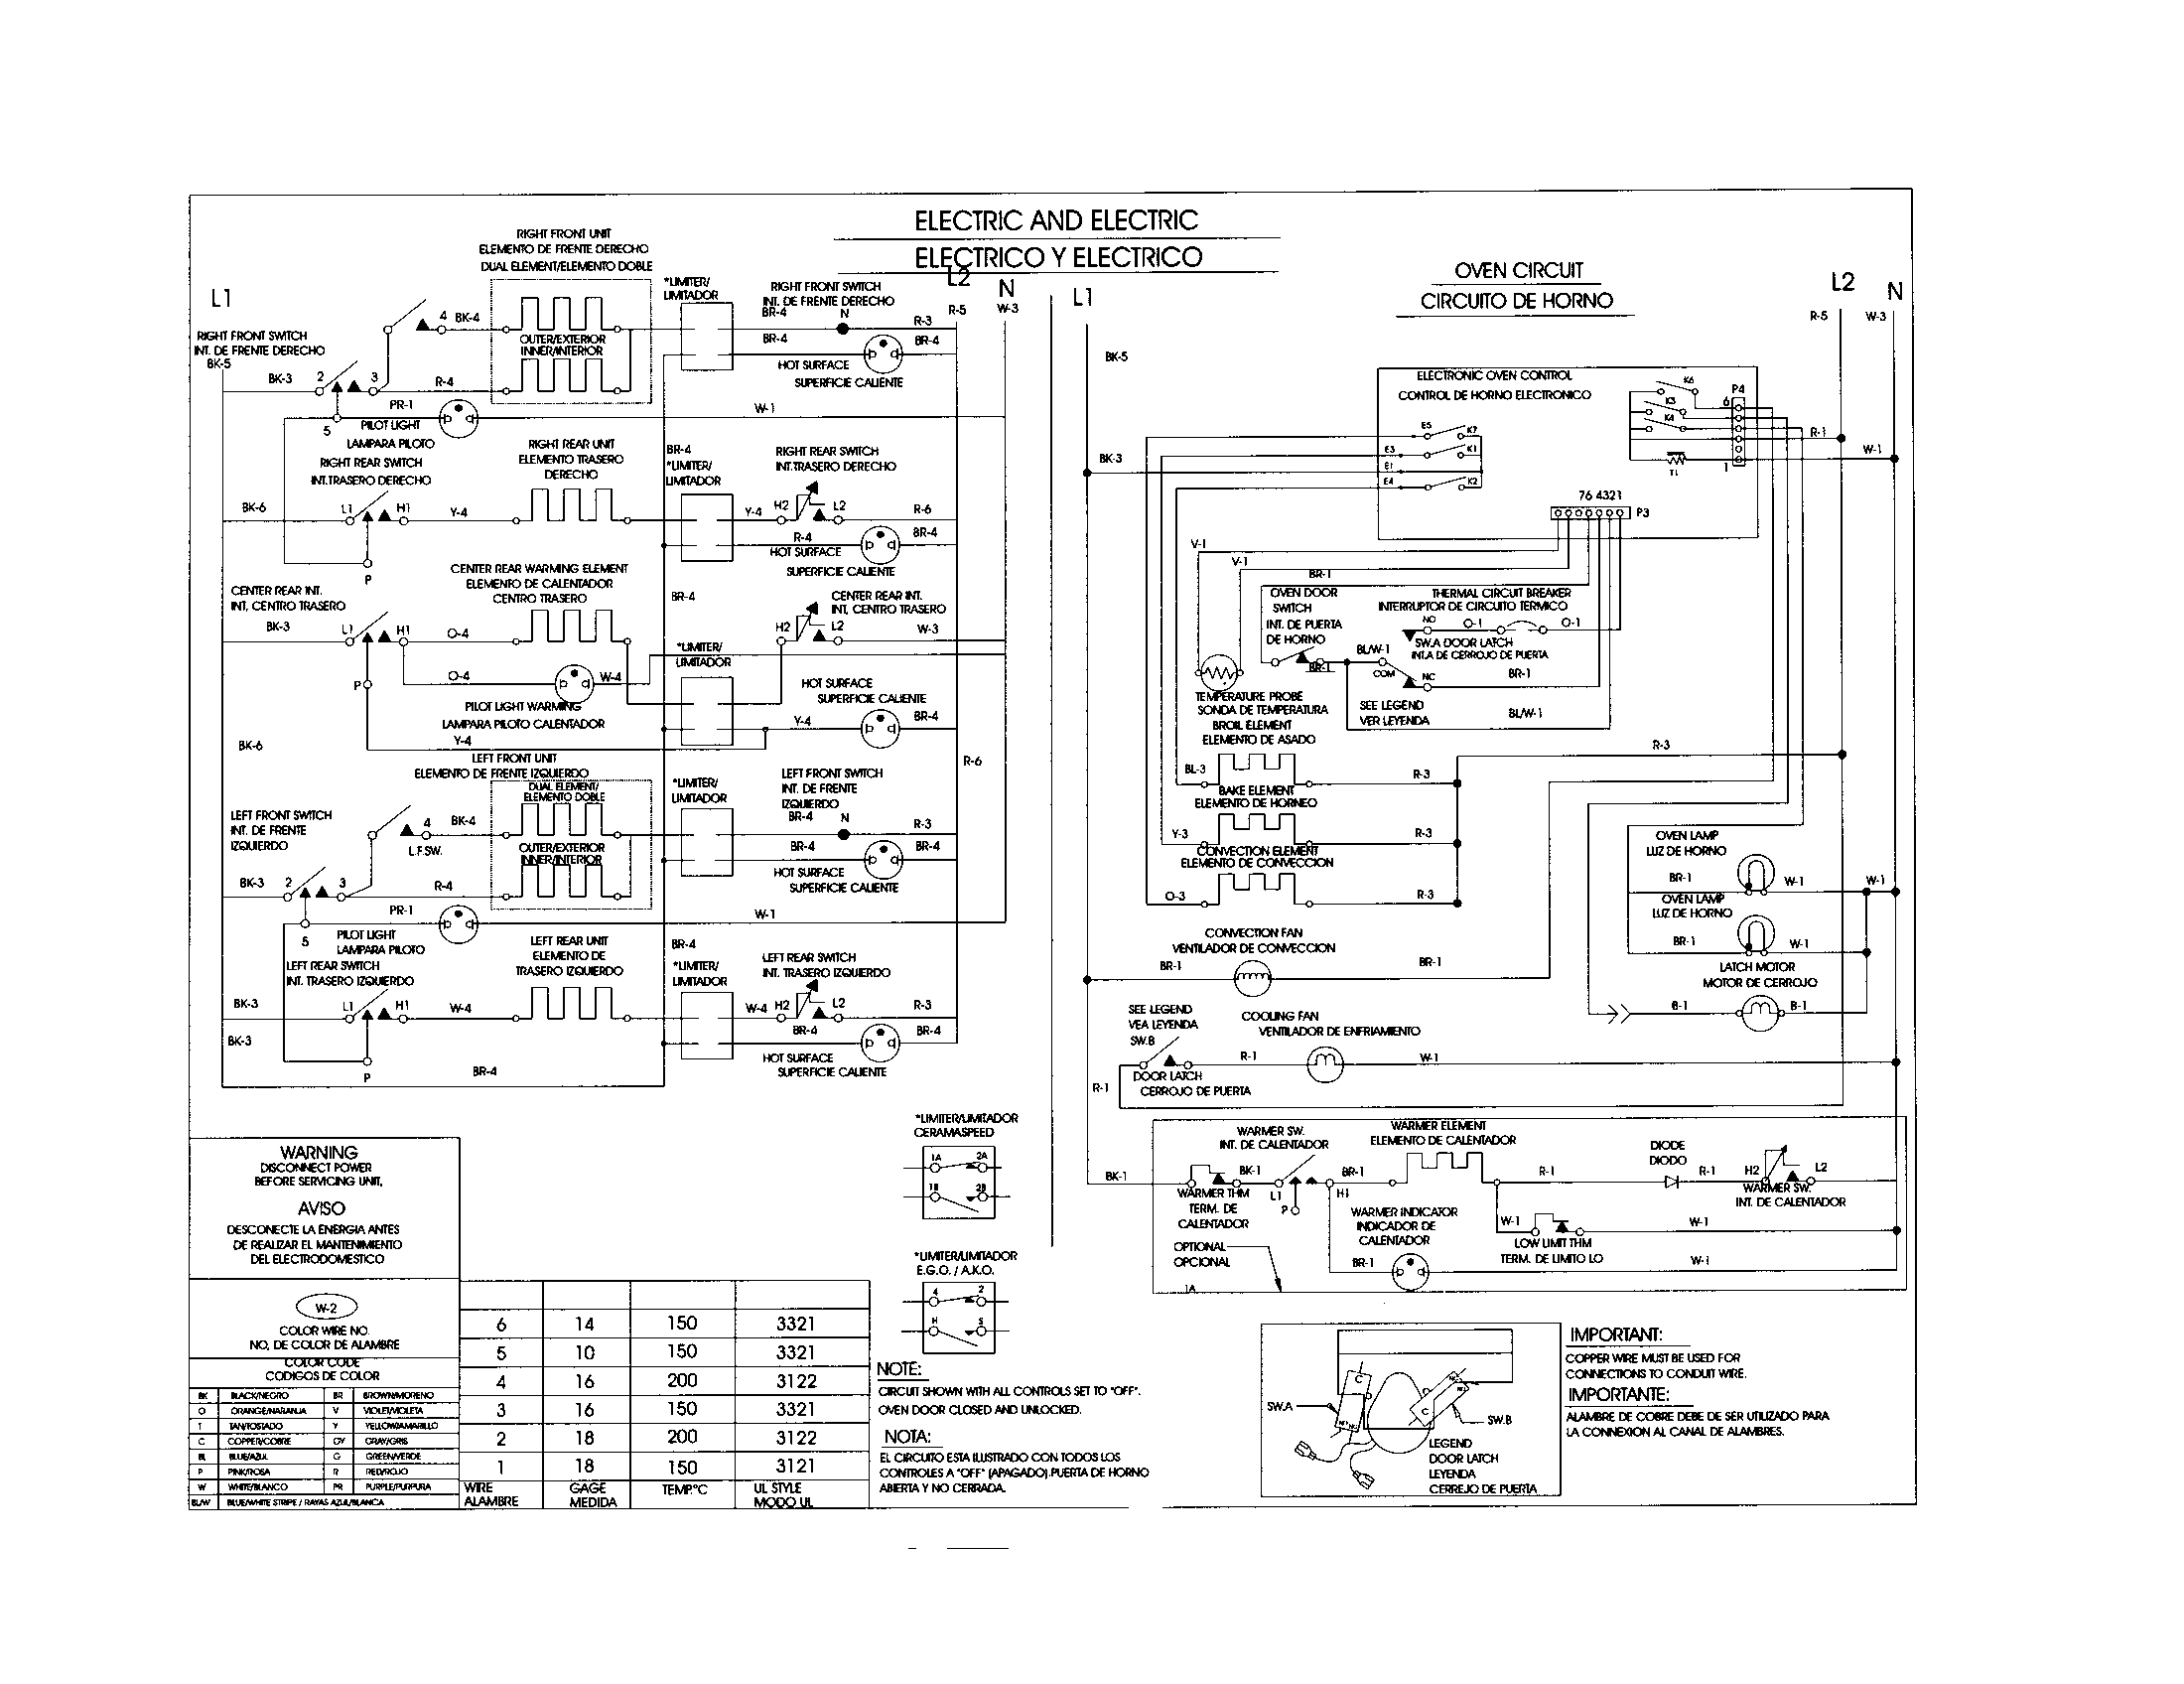 kenmore dishwasher wiring diagram to wiring diagram parts with regard to kenmore elite dishwasher 665 parts diagram kenmore elite dishwasher 665 parts diagram automotive parts ge332max h ultra wiring diagram at pacquiaovsvargaslive.co